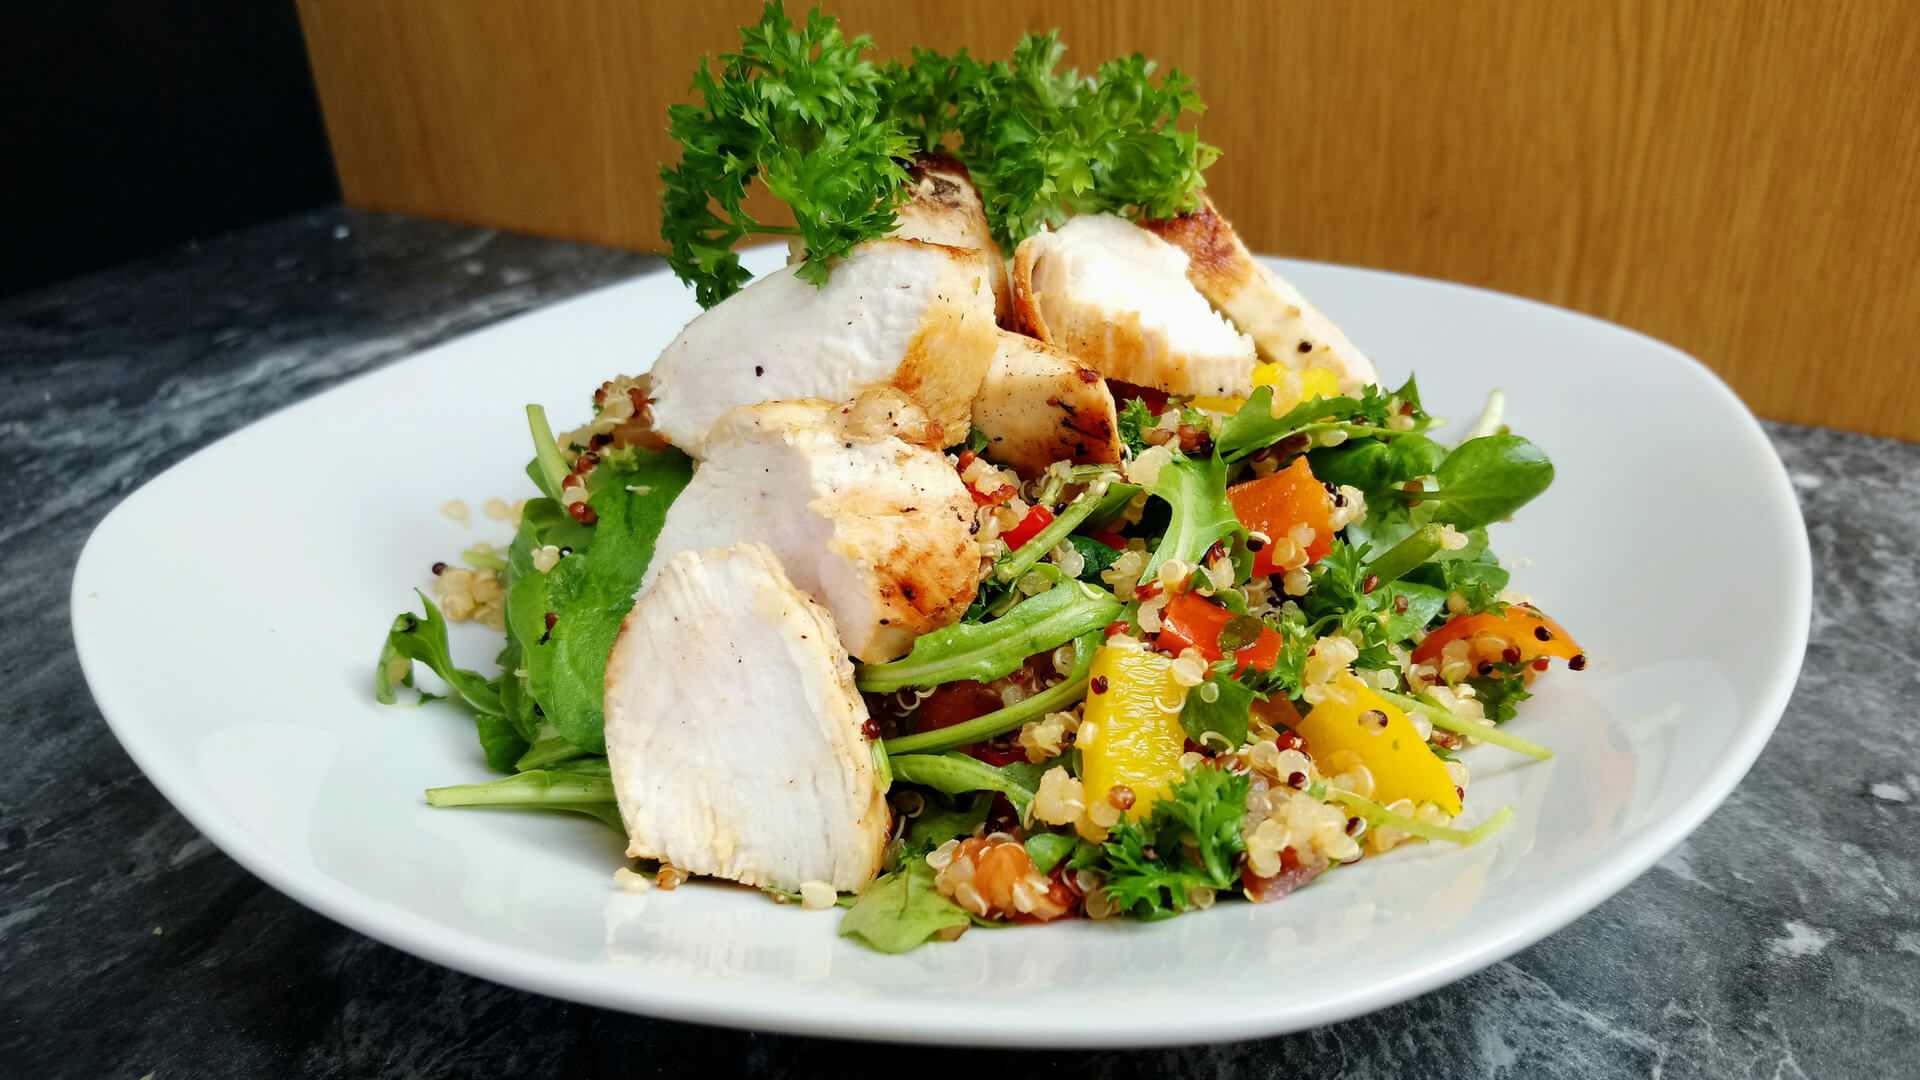 Quinoa salad with pan-fried chicken